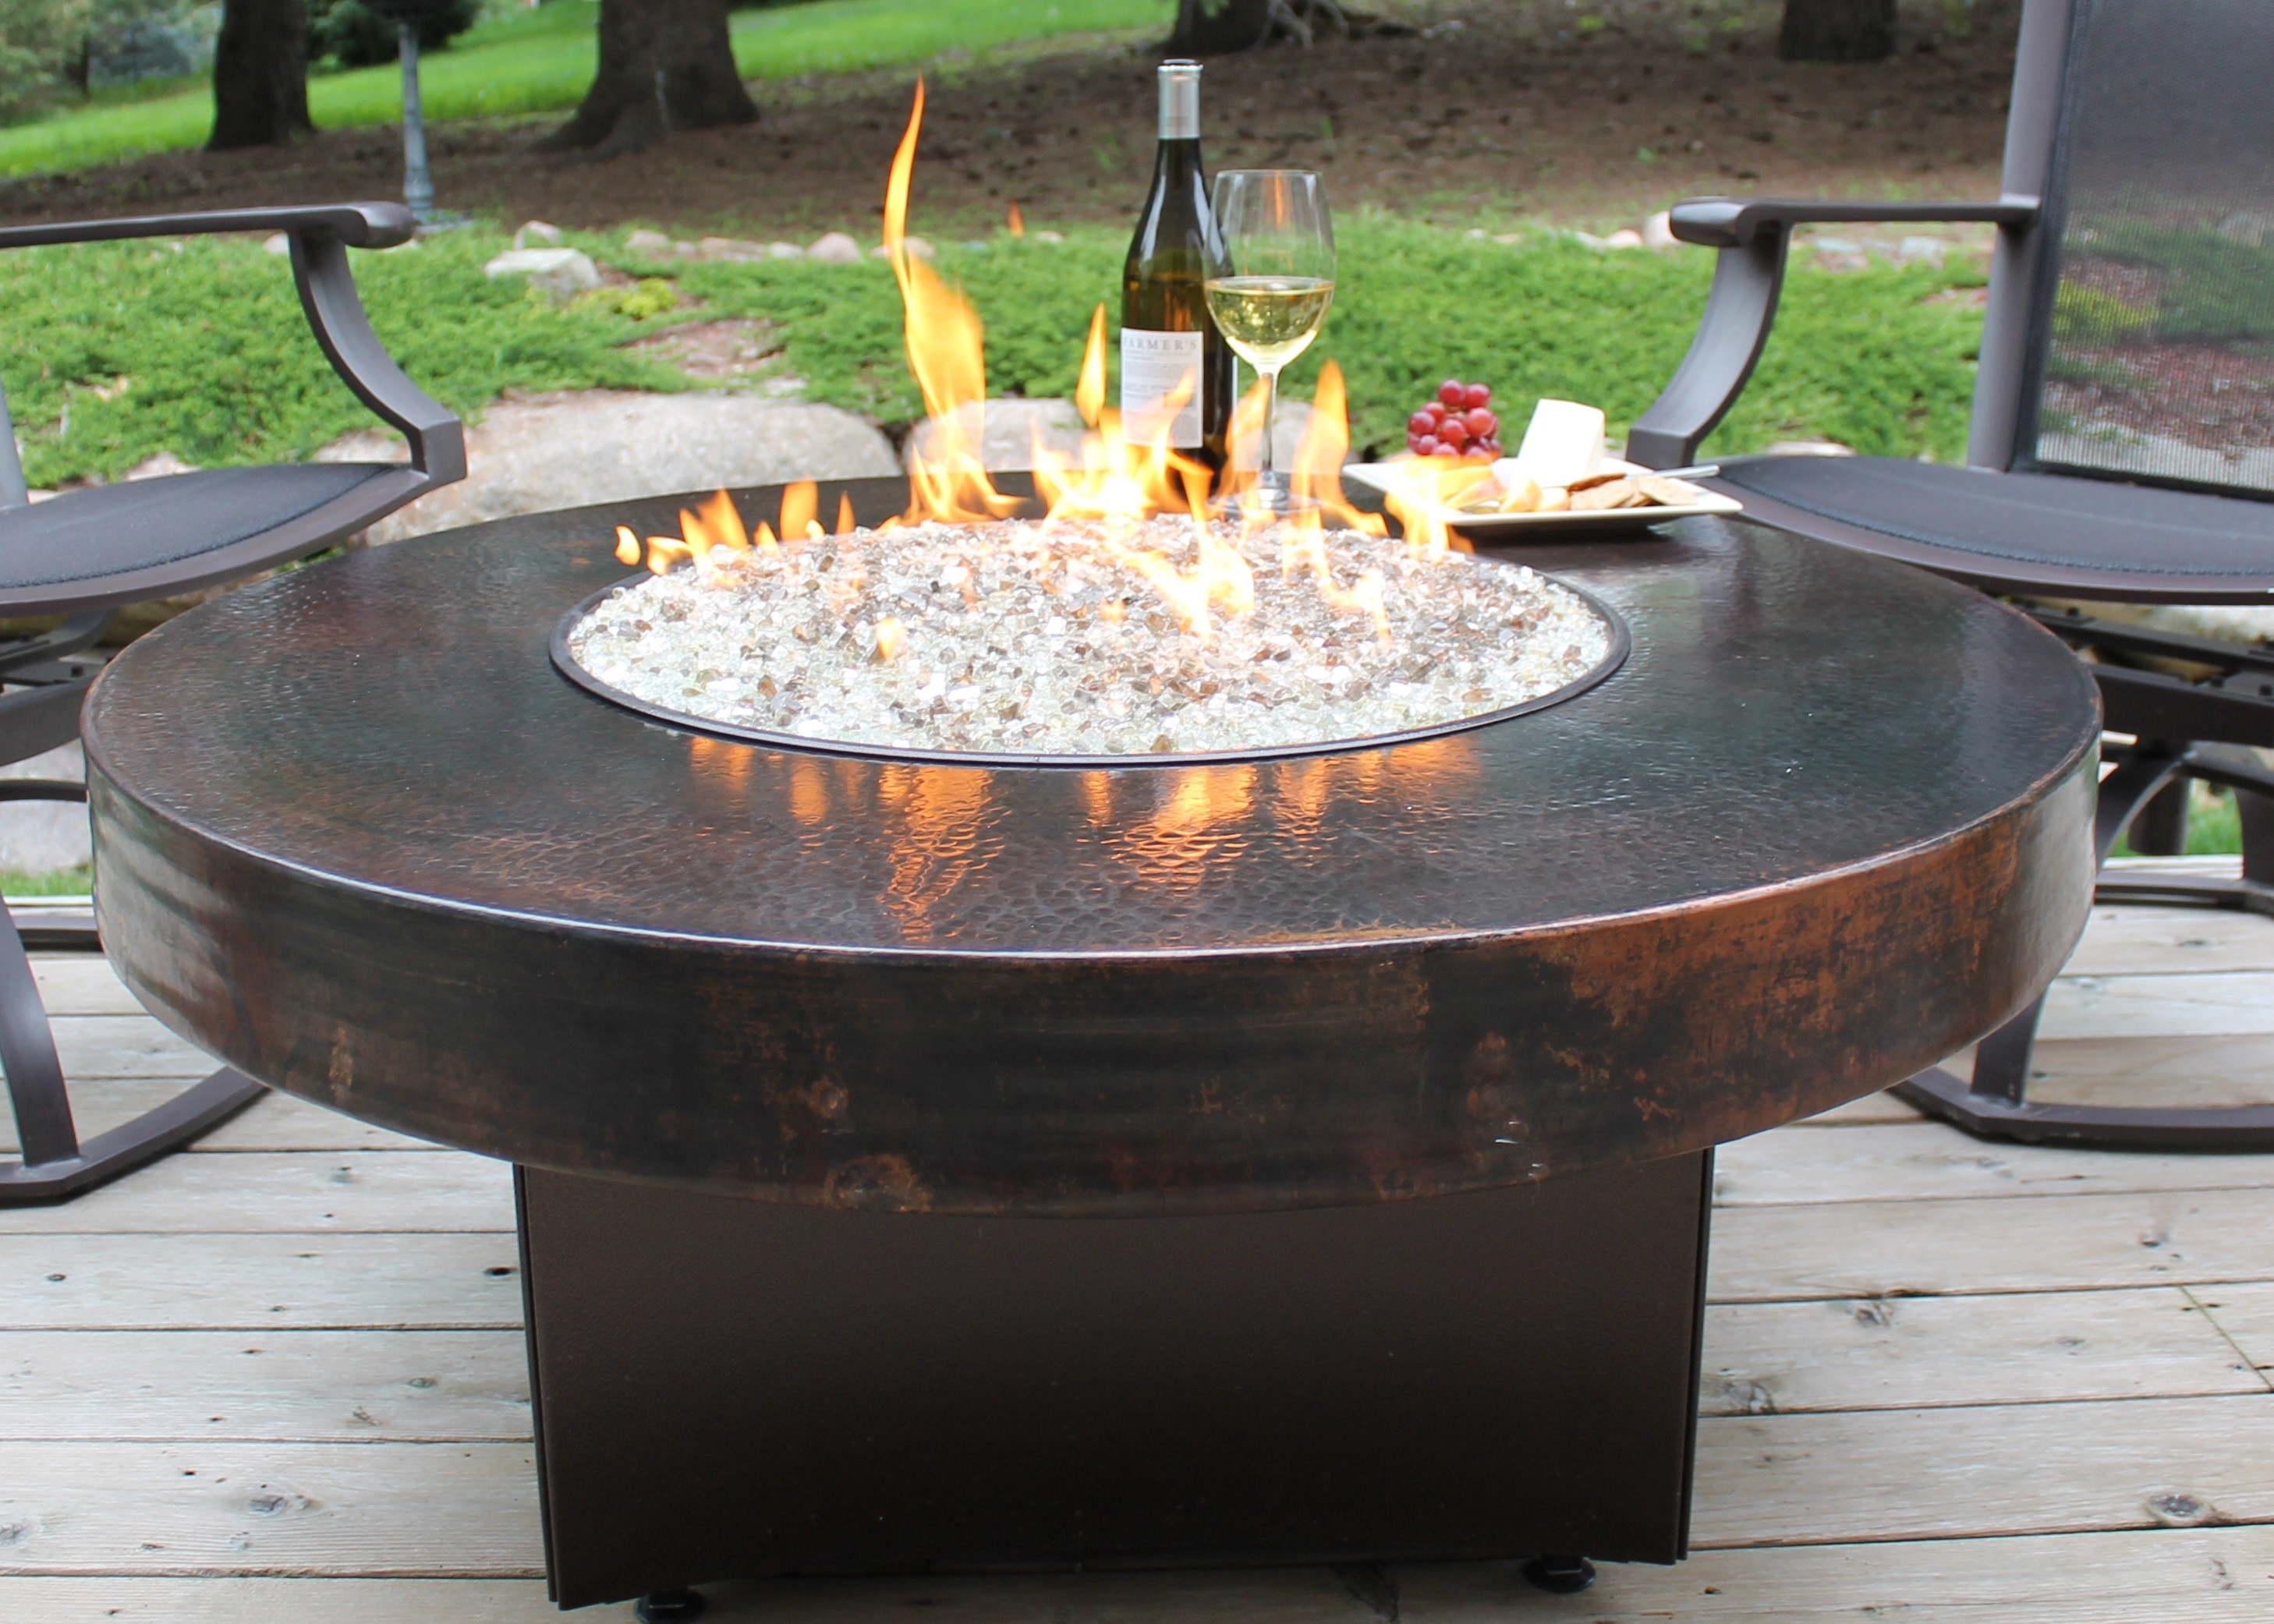 Glass Rocks For Fire Pits The Latest Home Decor Ideas for measurements 2916 X 2083